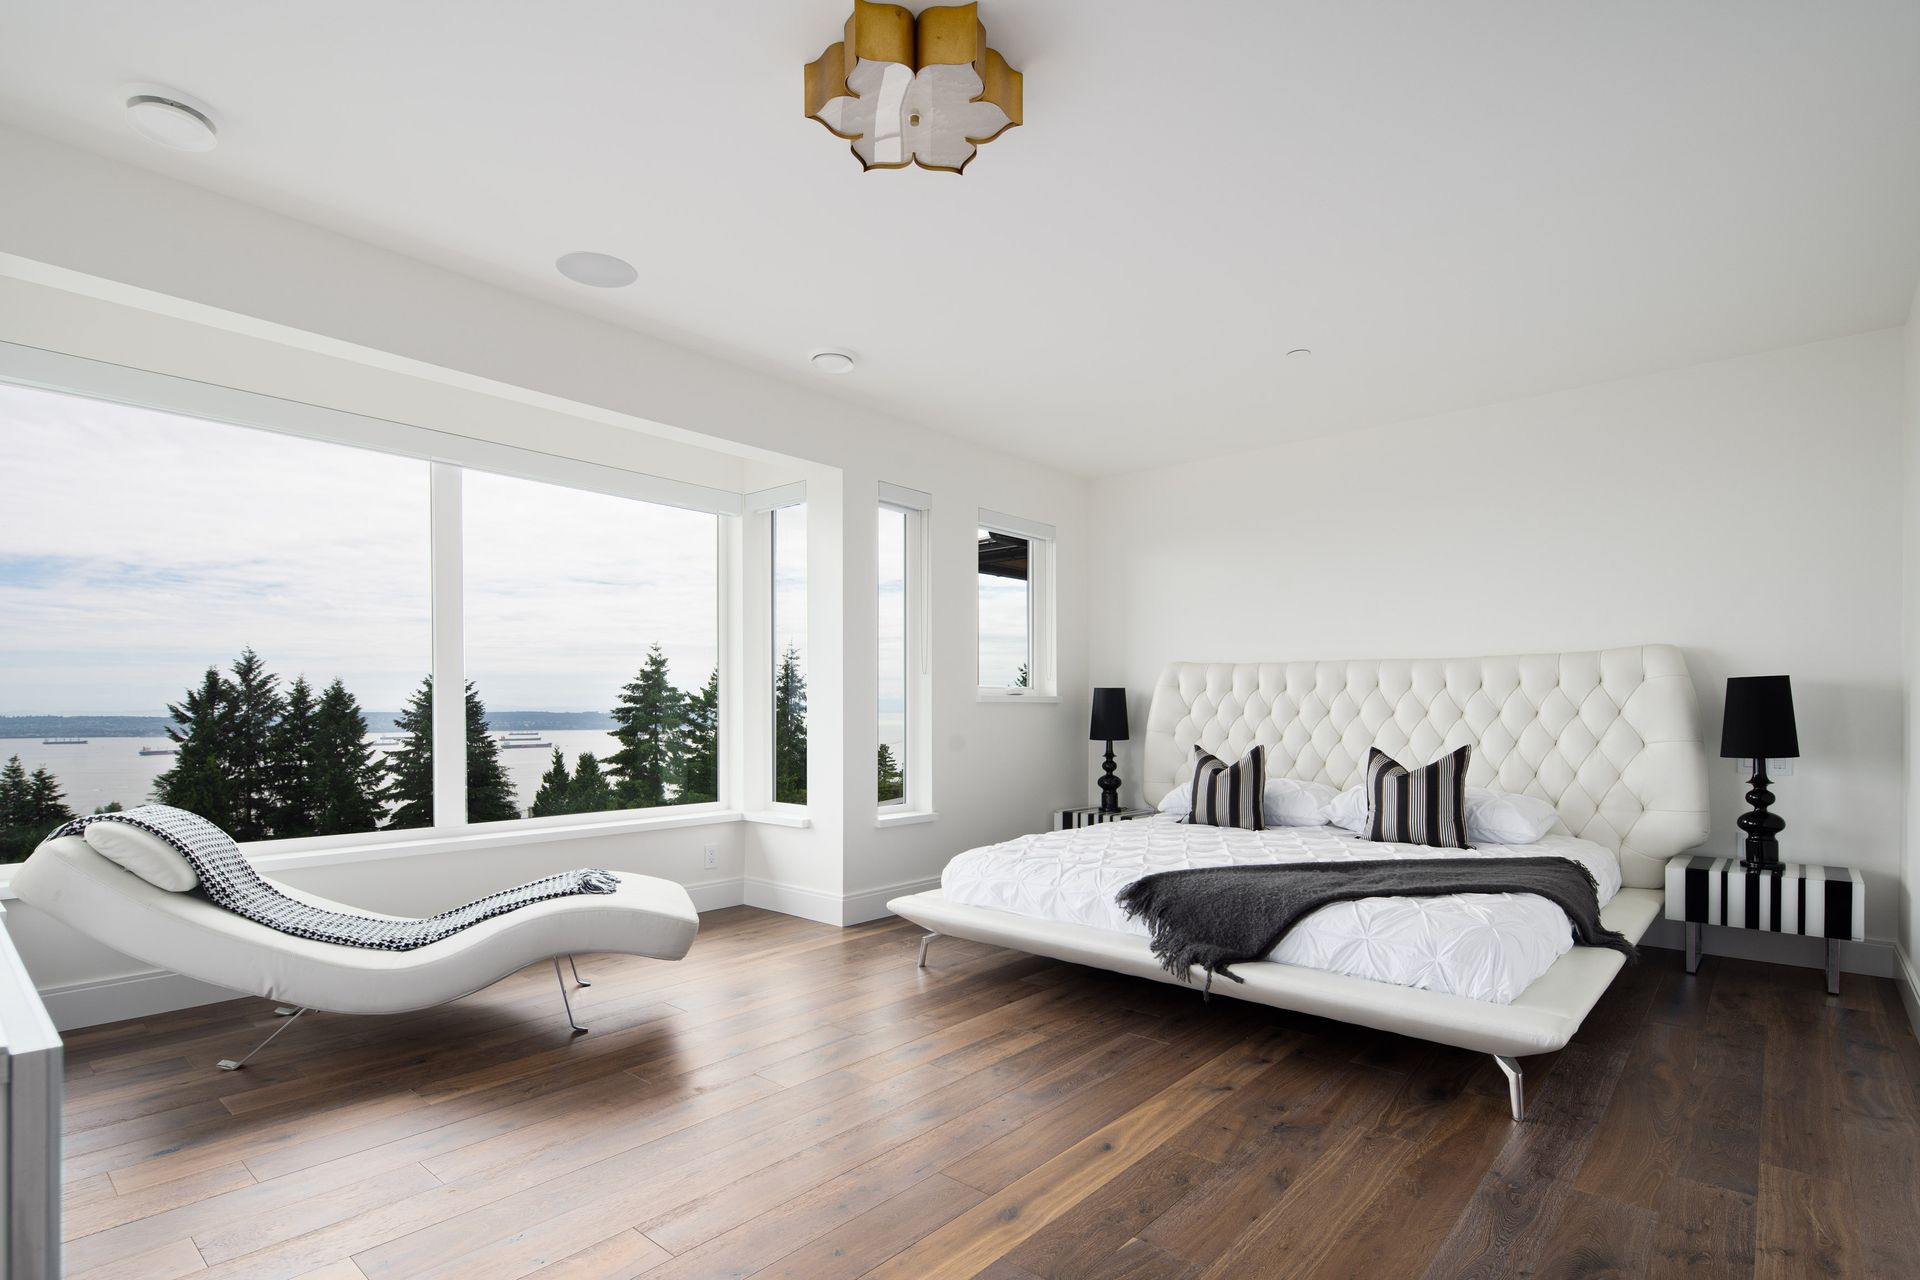 union-crt-2121-west-vancouver-tandy-gao-staging-20 at 2121 Union Court, Panorama Village, West Vancouver